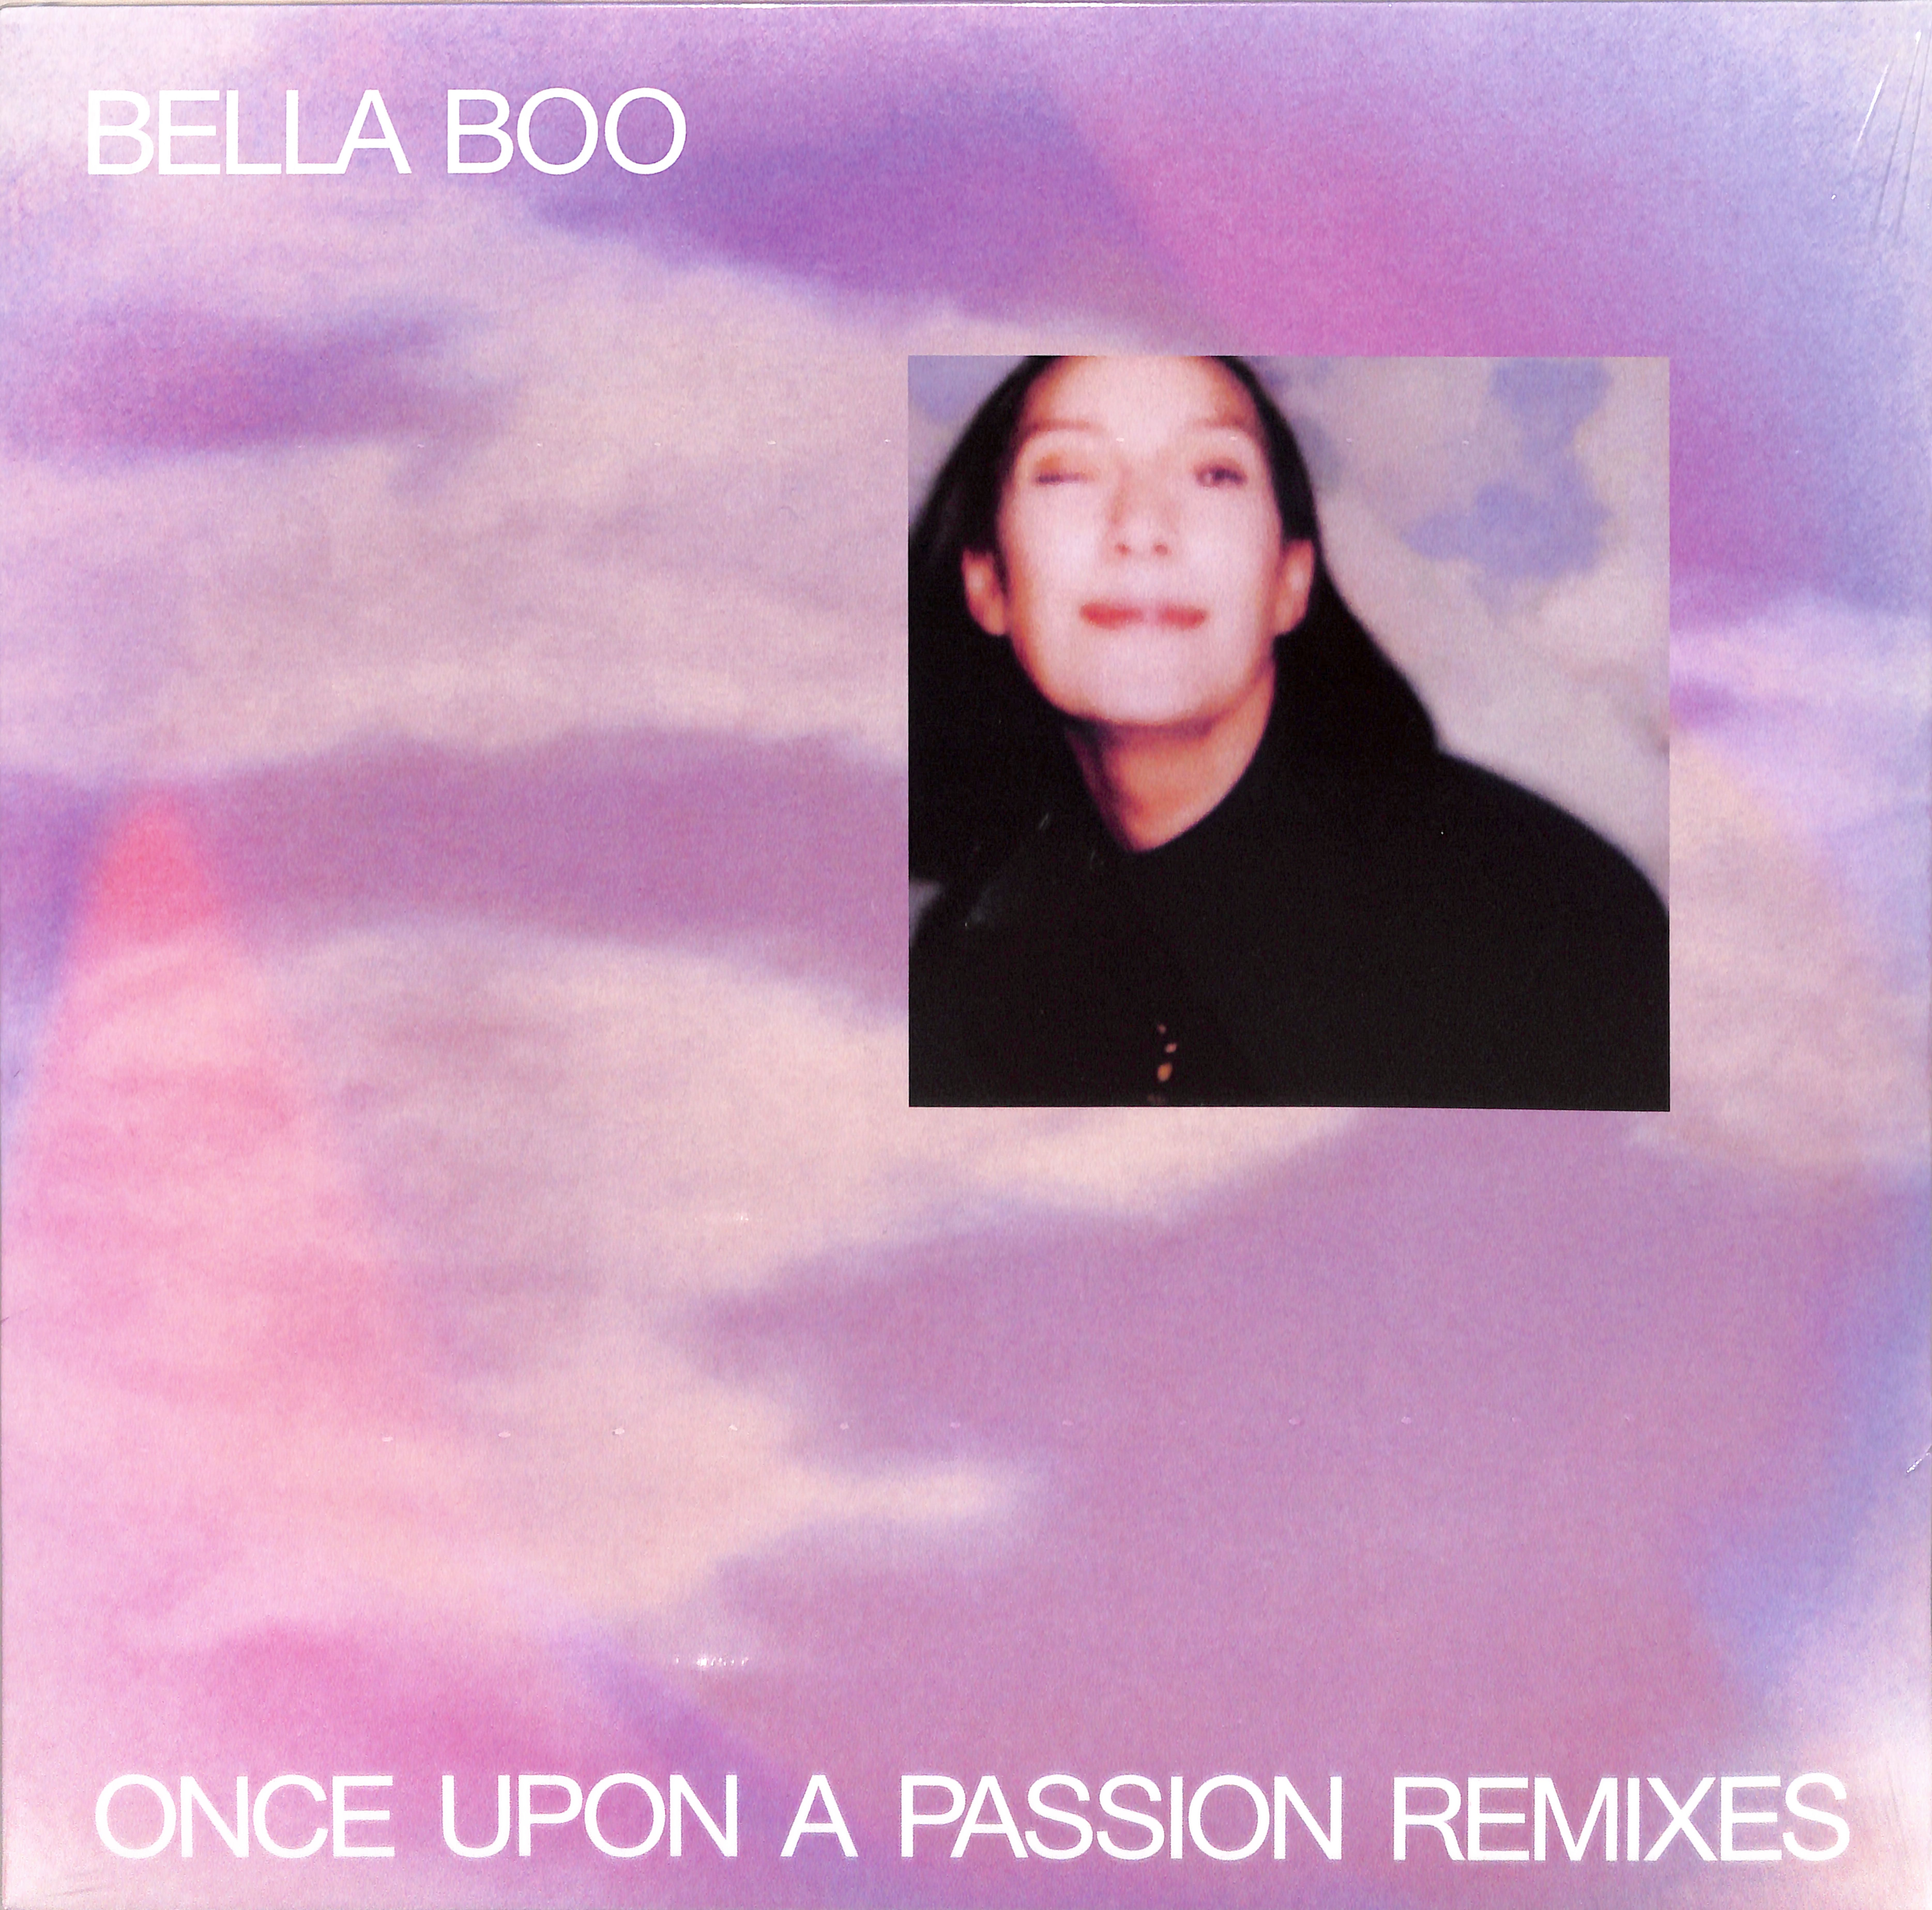 Bella Boo - ONCE UPON A PASSION - REMIXES